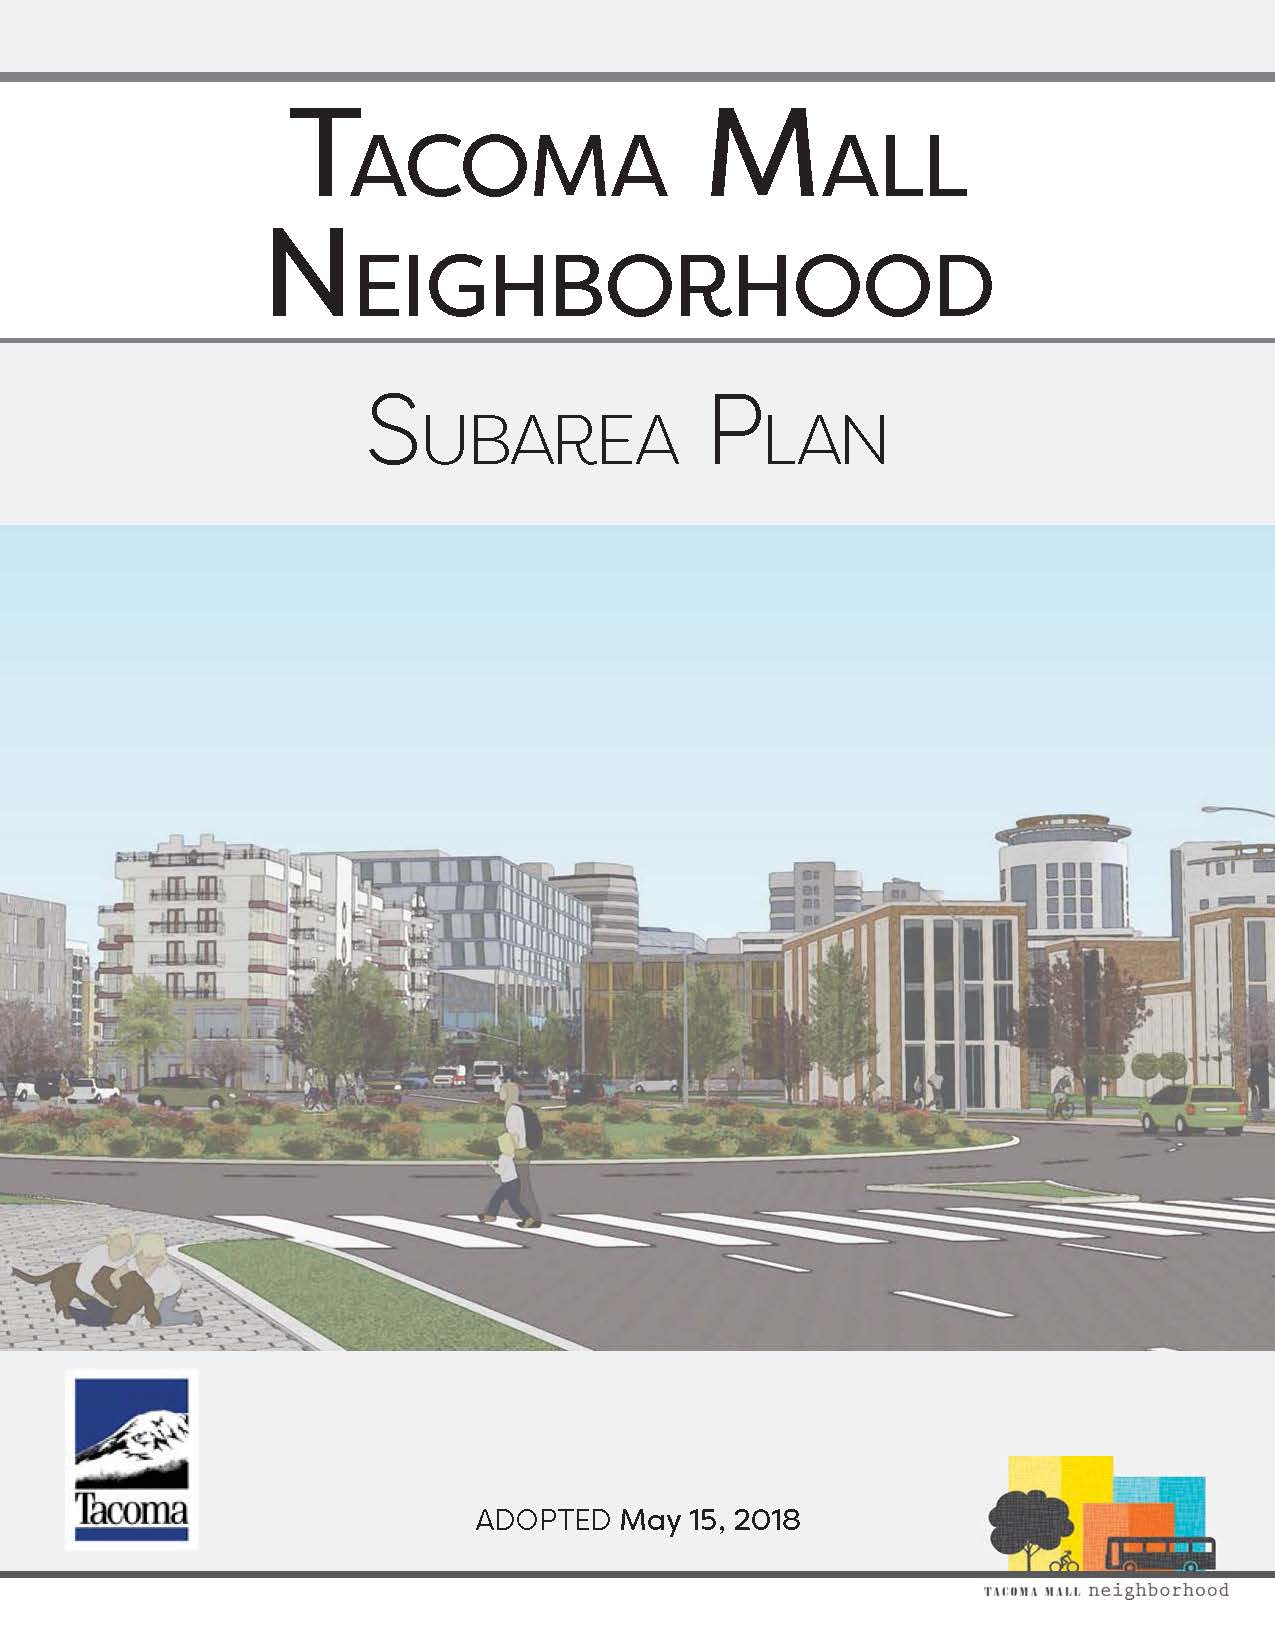 Tacoma Mall Neighborhood Subarea Plan